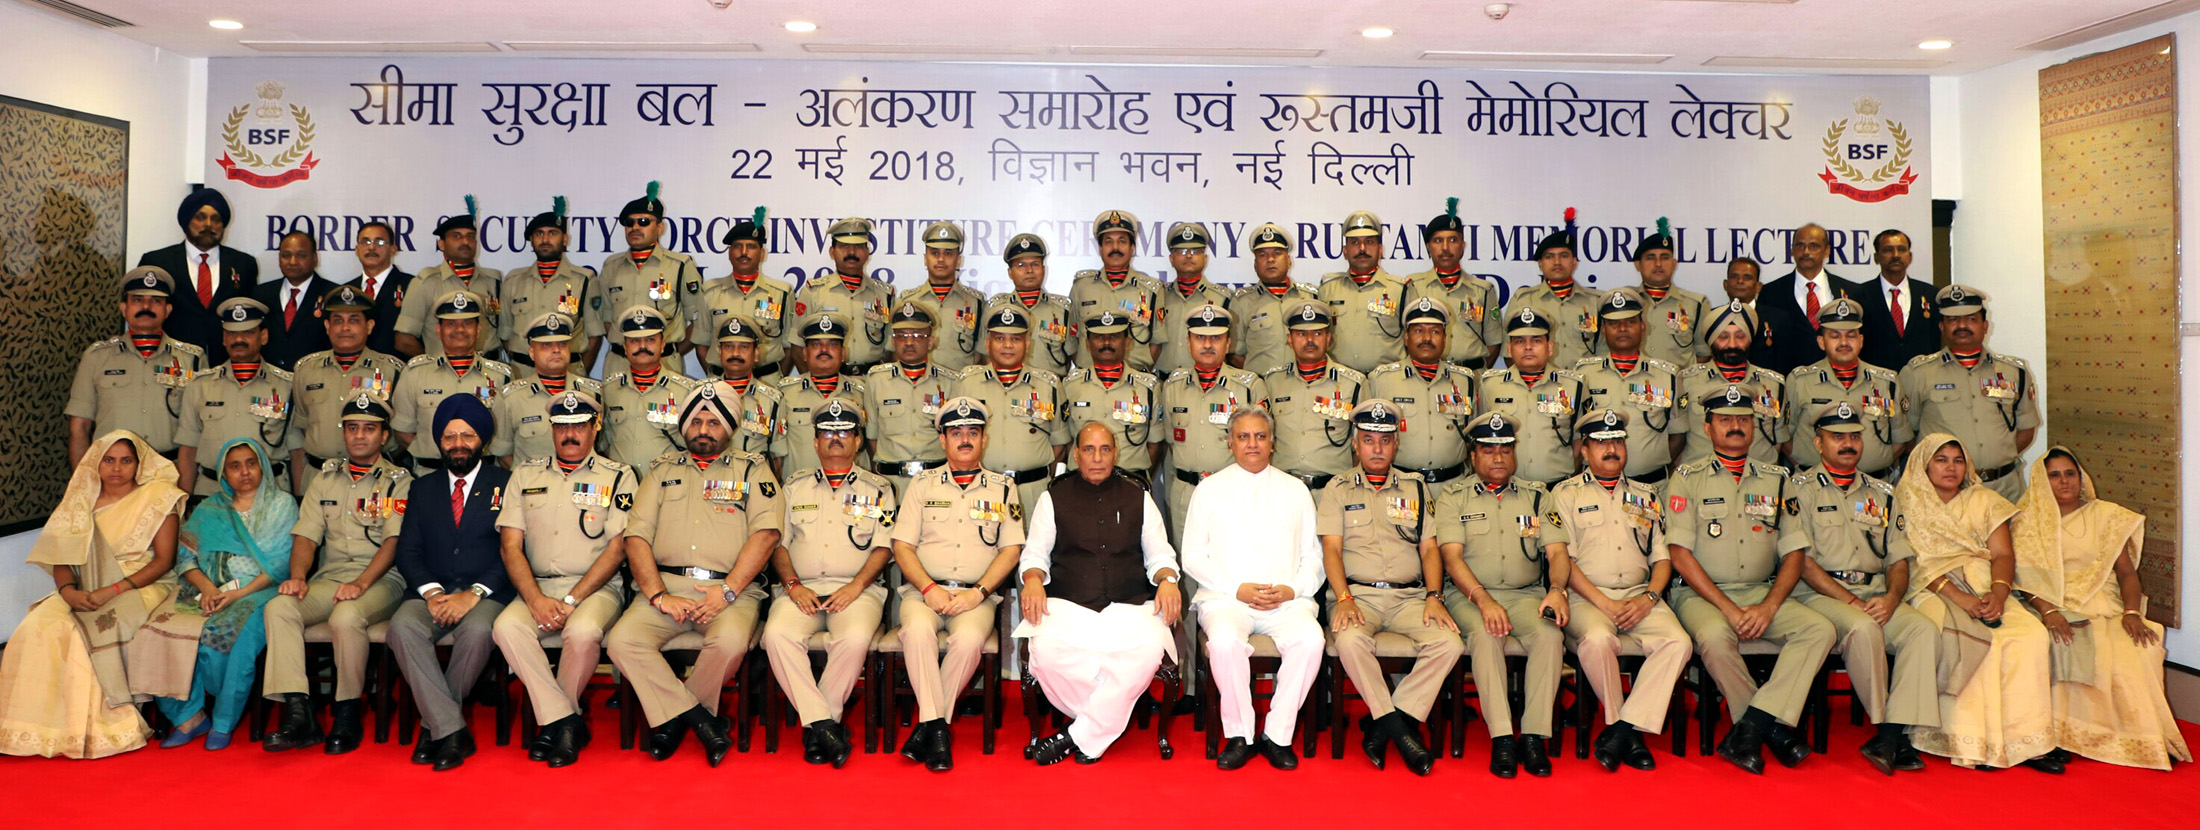 The Union Home Minister, Shri Rajnath Singh in a group photograph with the awardees, during the Investiture Ceremony of Border Security Force (BSF), in New Delhi on May 22, 2018.  The DG, BSF, Shri K.K. Sharma, the Director, IB, Shri Rajiv Jain and other dignitaries are also seen.